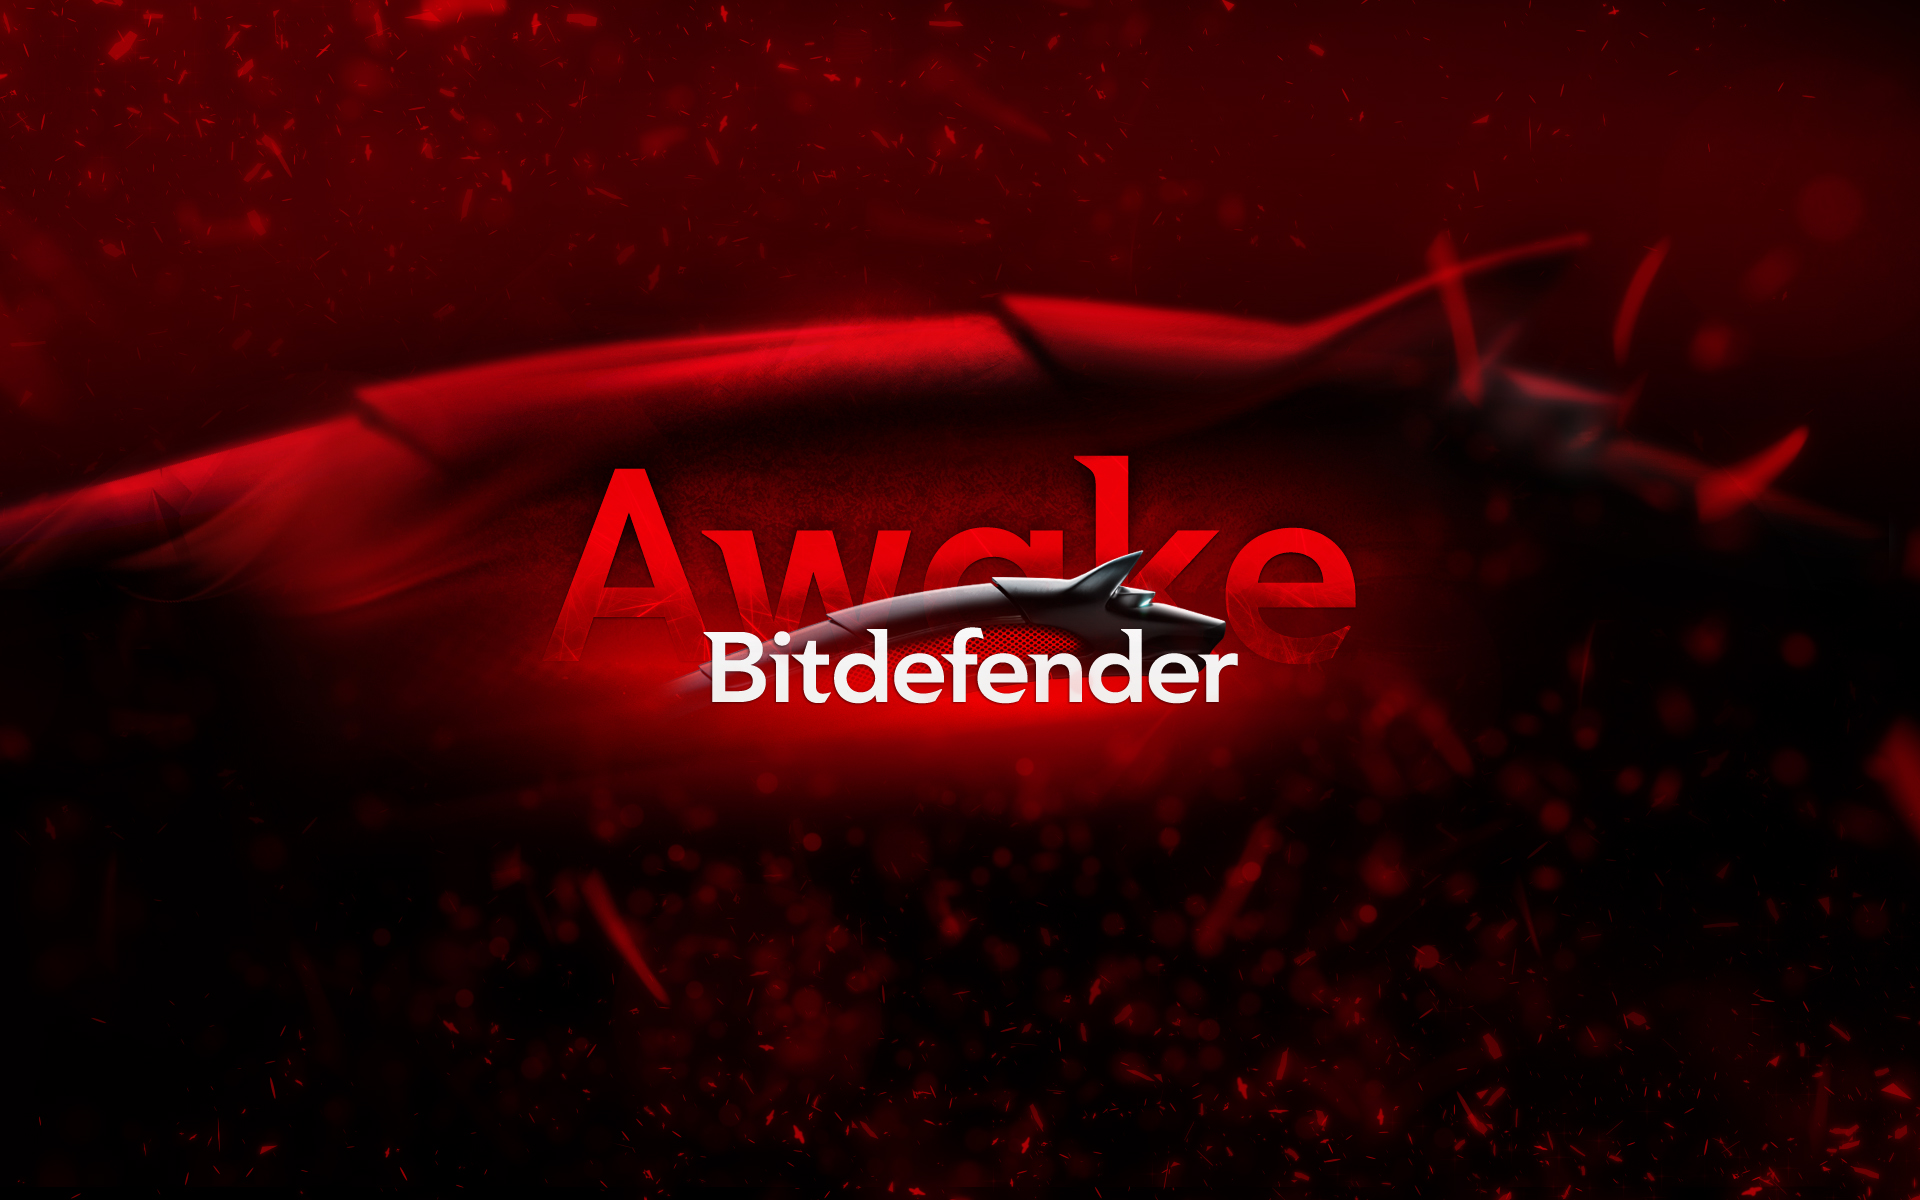 Bitdefender Awake wallpaper